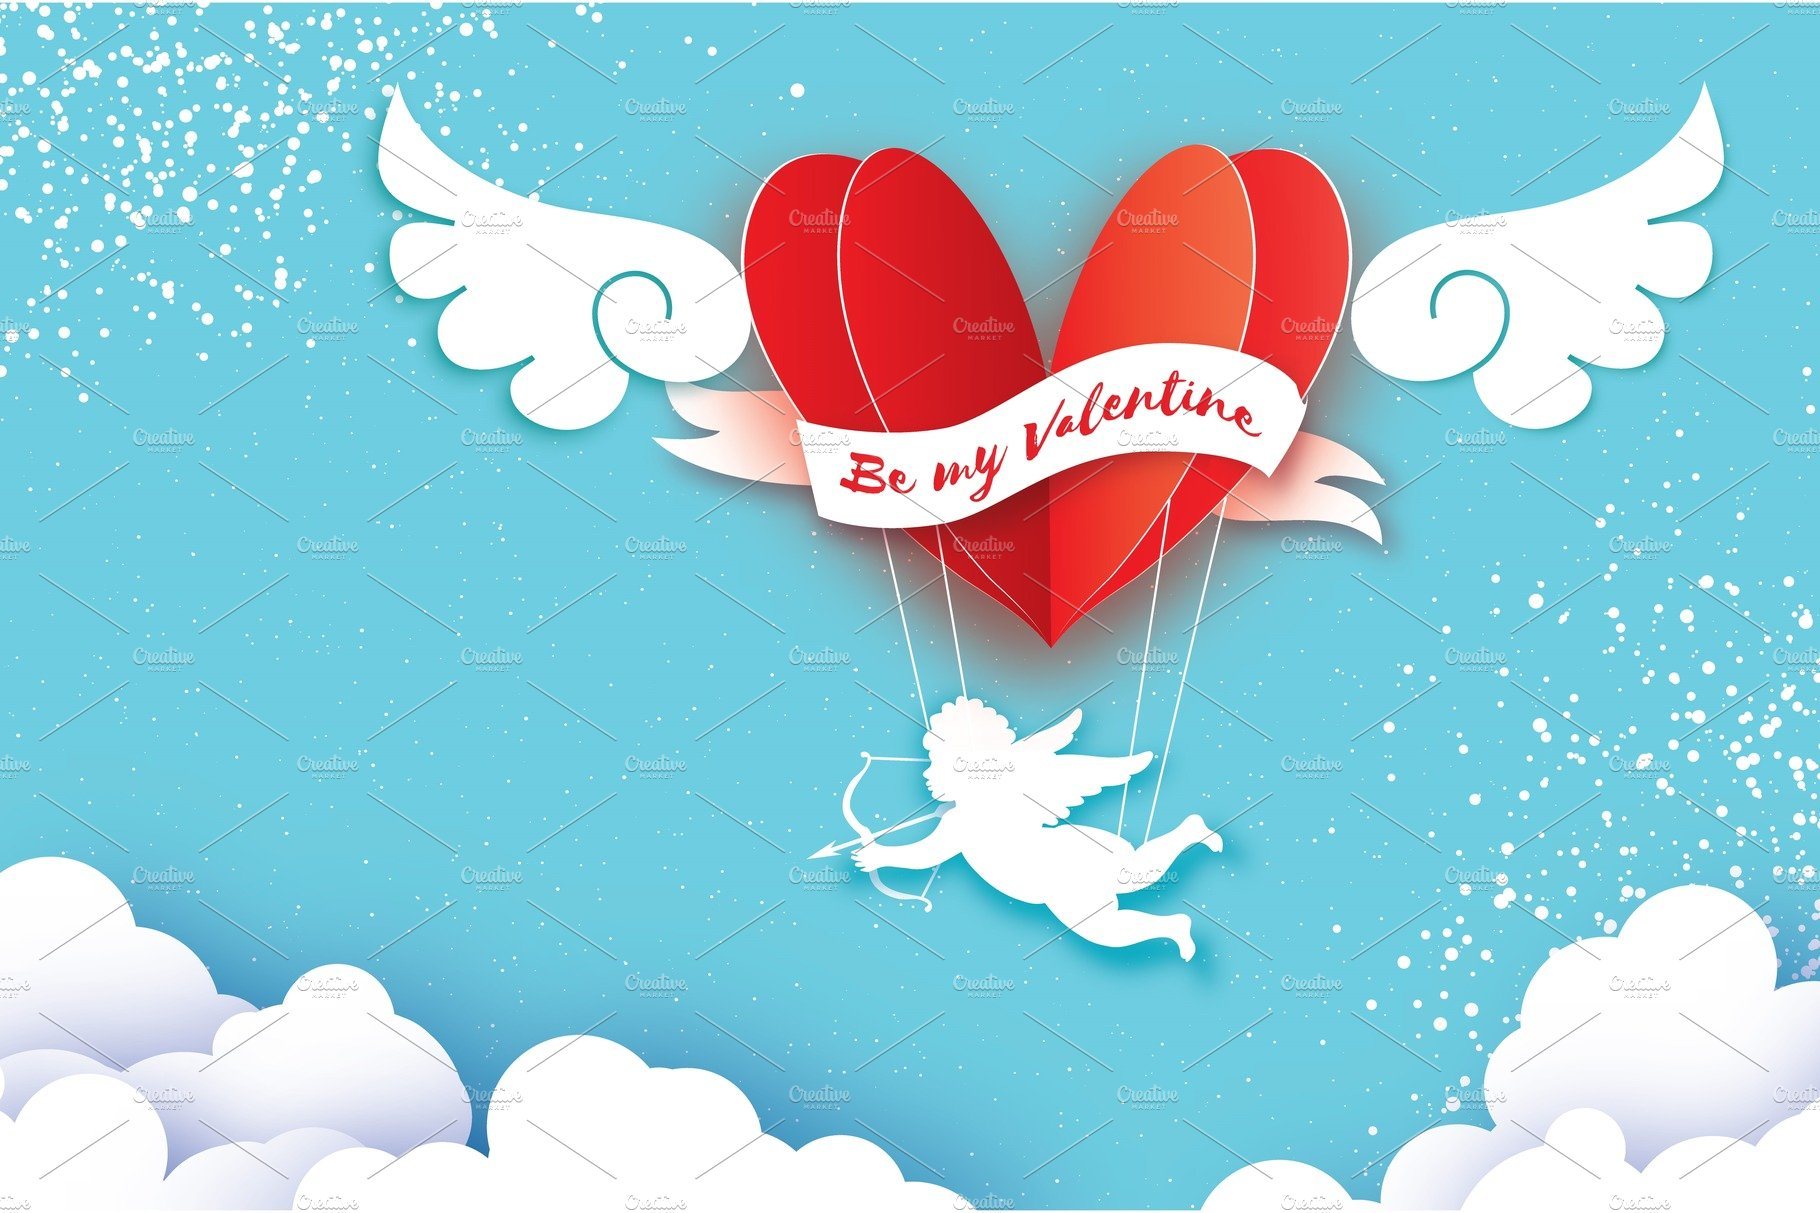 Flying cupid little angel love pink heart in paper cut style love pink heart in paper cut style origami boy cherub red hot air balloon flying love angel wings on blue sky happy valentine day romantic holidays jeuxipadfo Choice Image